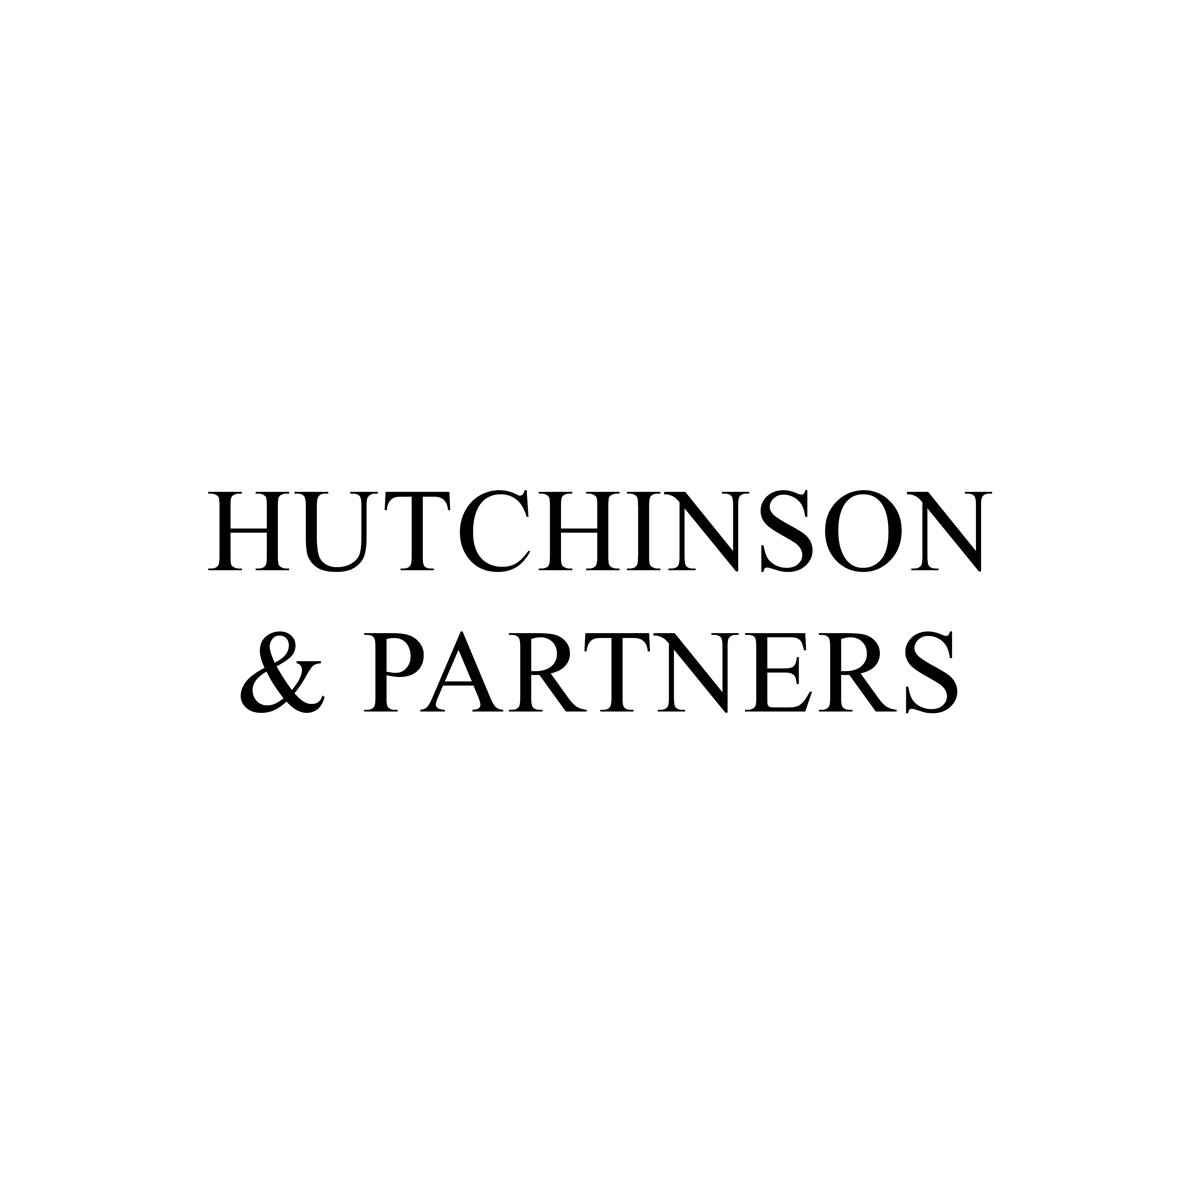 Hutchinson & Partners Limited